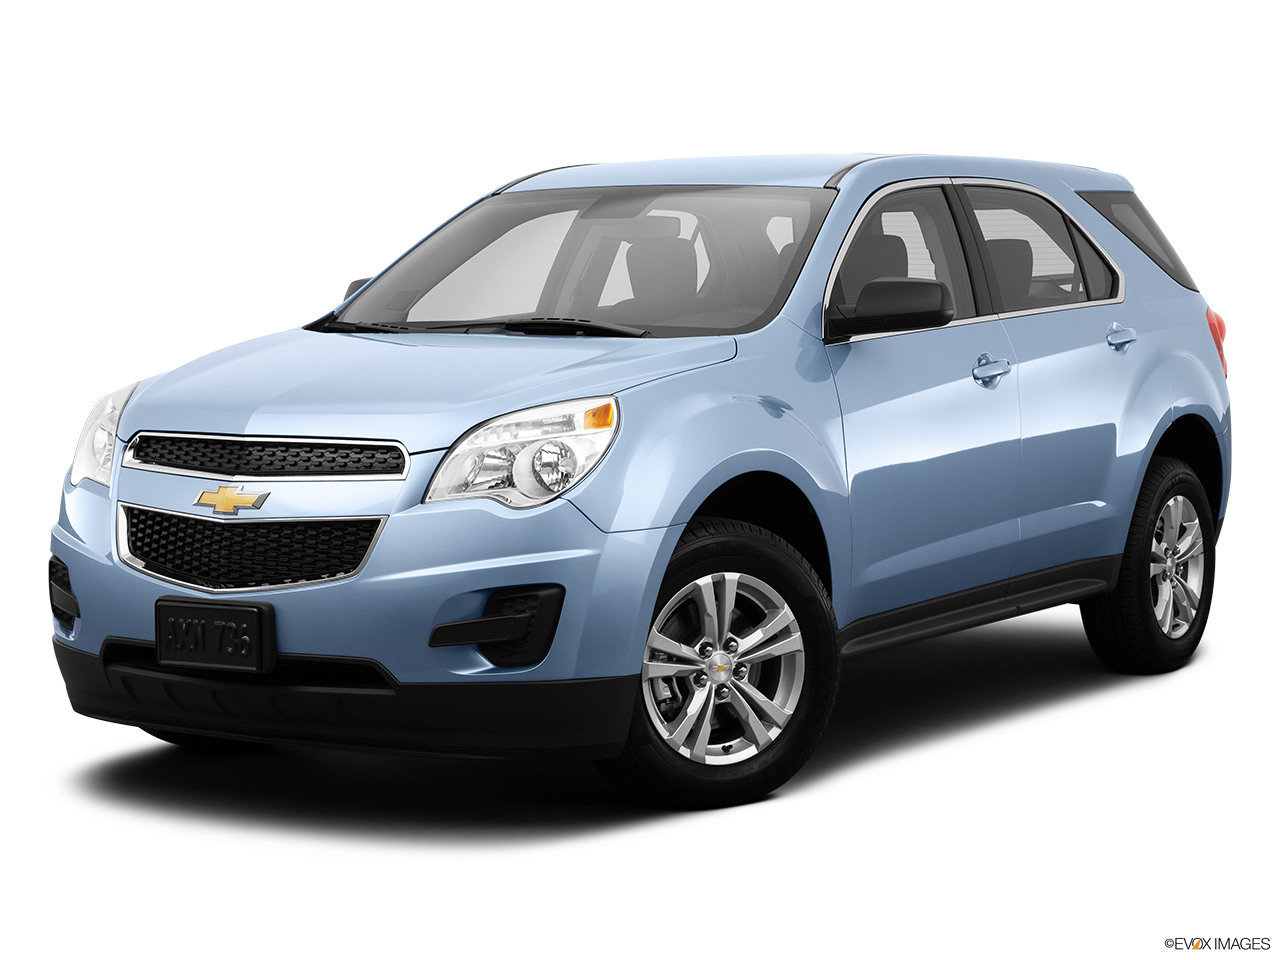 All Chevy 2014 chevrolet suv : 9238_st1280_089.jpg